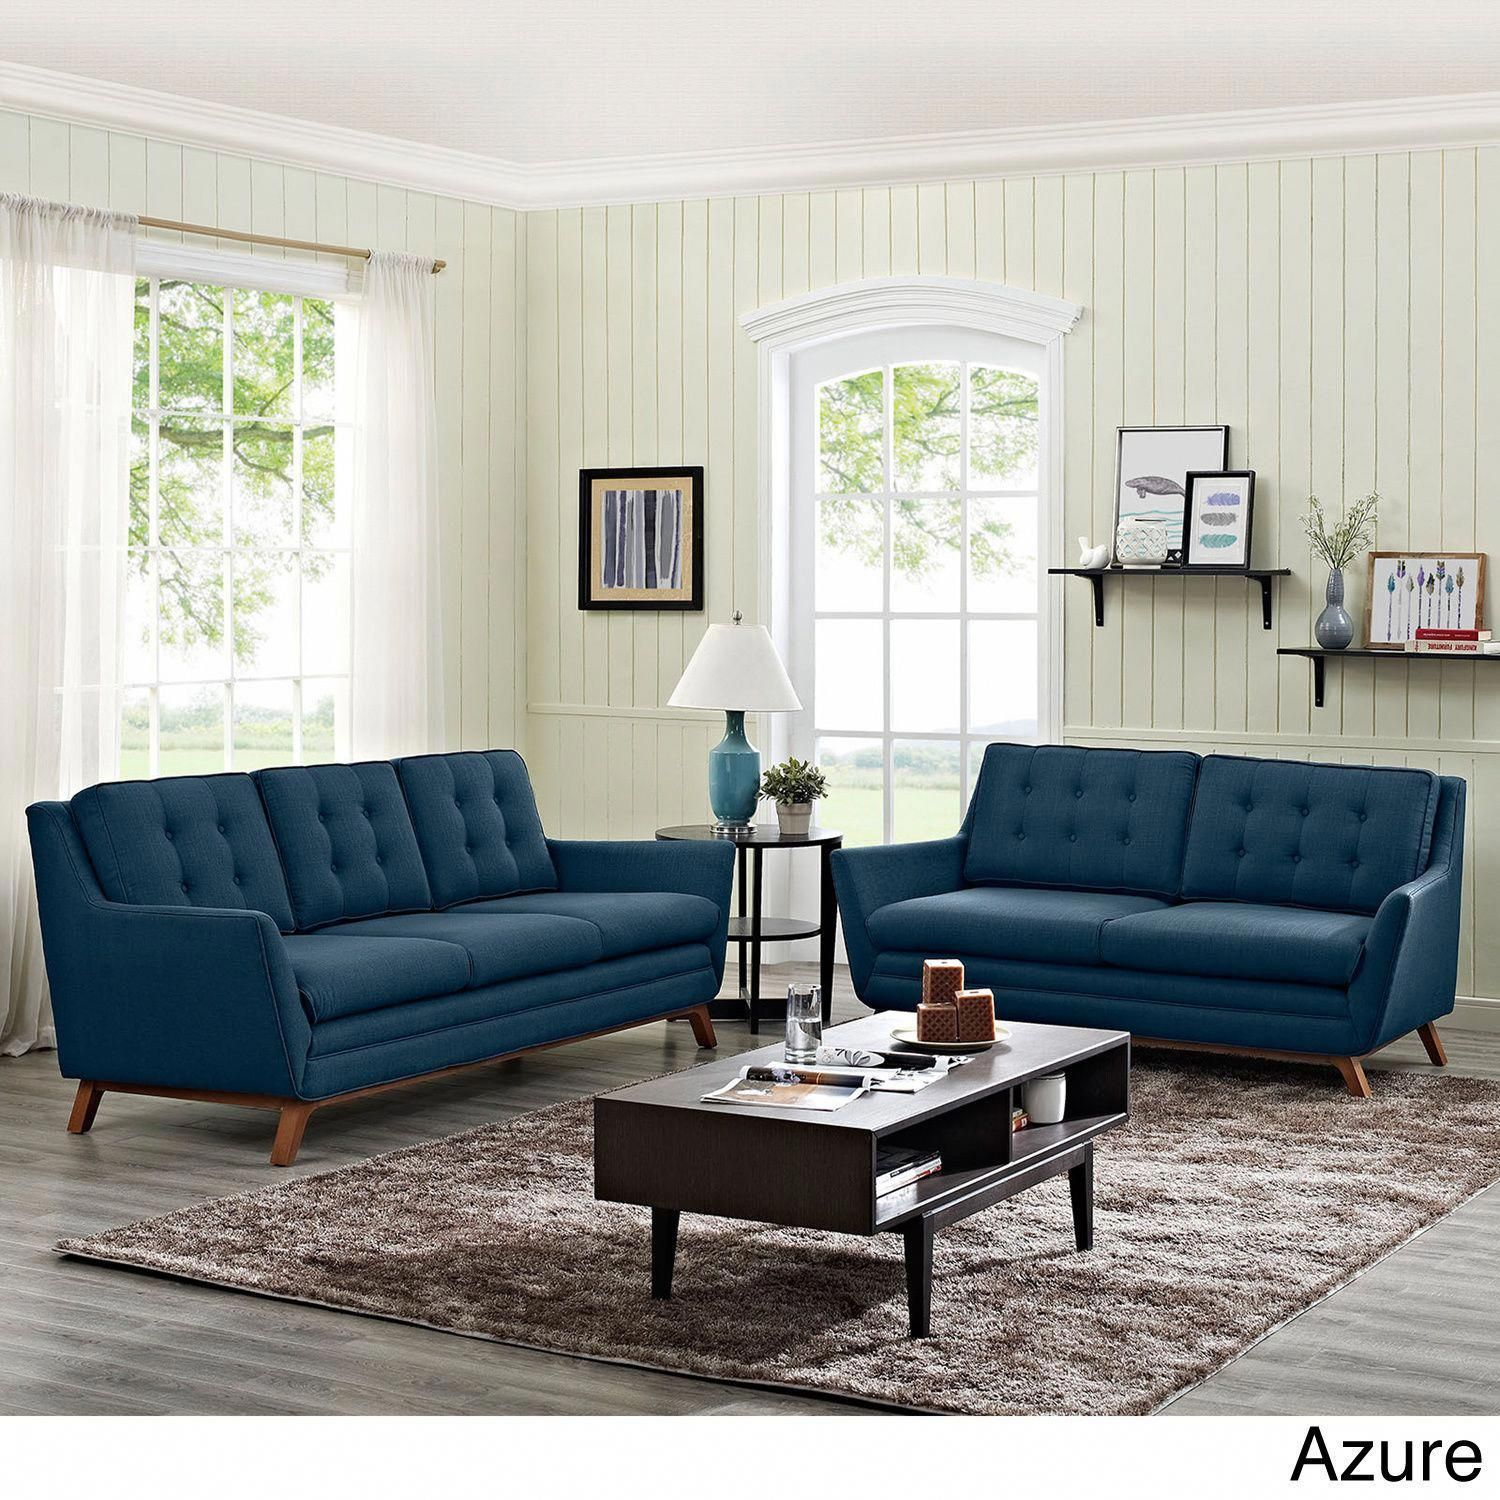 Modway Beguile Tufted Fabric Sofa And Loveseat Set Azure Beige Off White Livingroomsets Living Room Sets Sofa And Loveseat Set Room Set #off #white #living #room #set